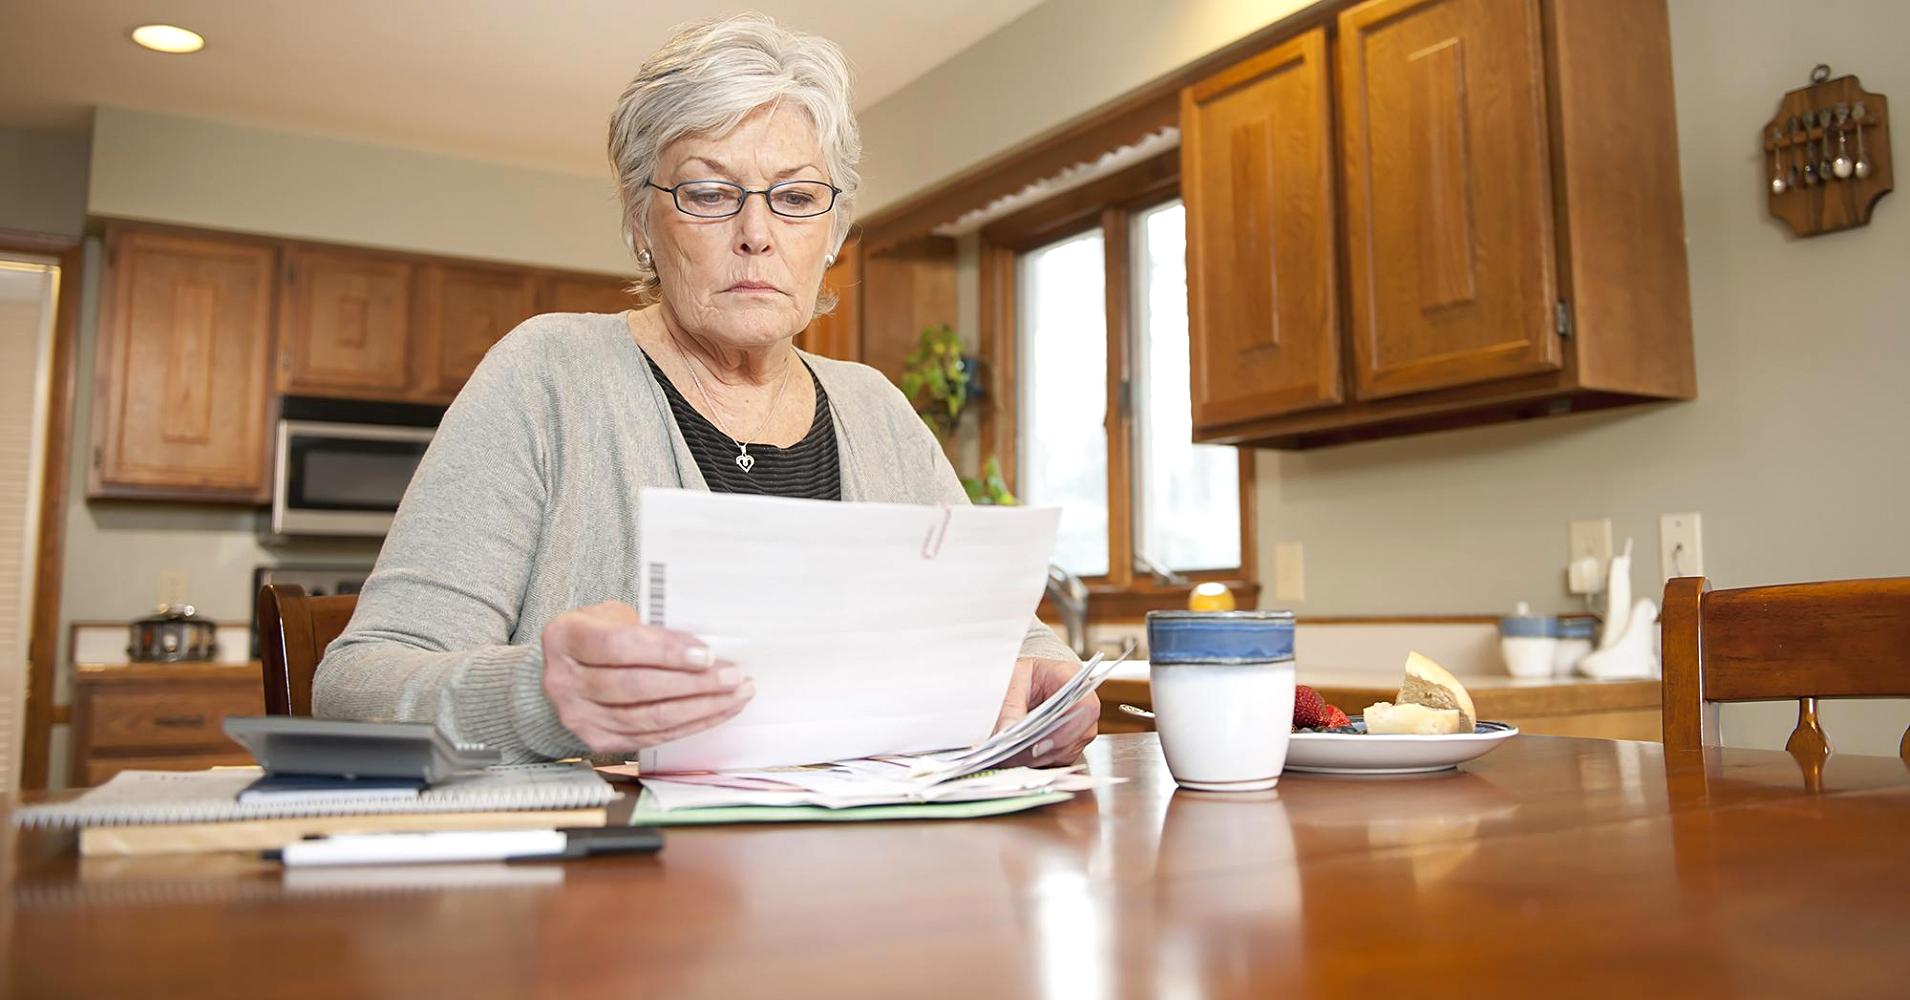 These funds help baby boomers avoid a 50% tax penalty